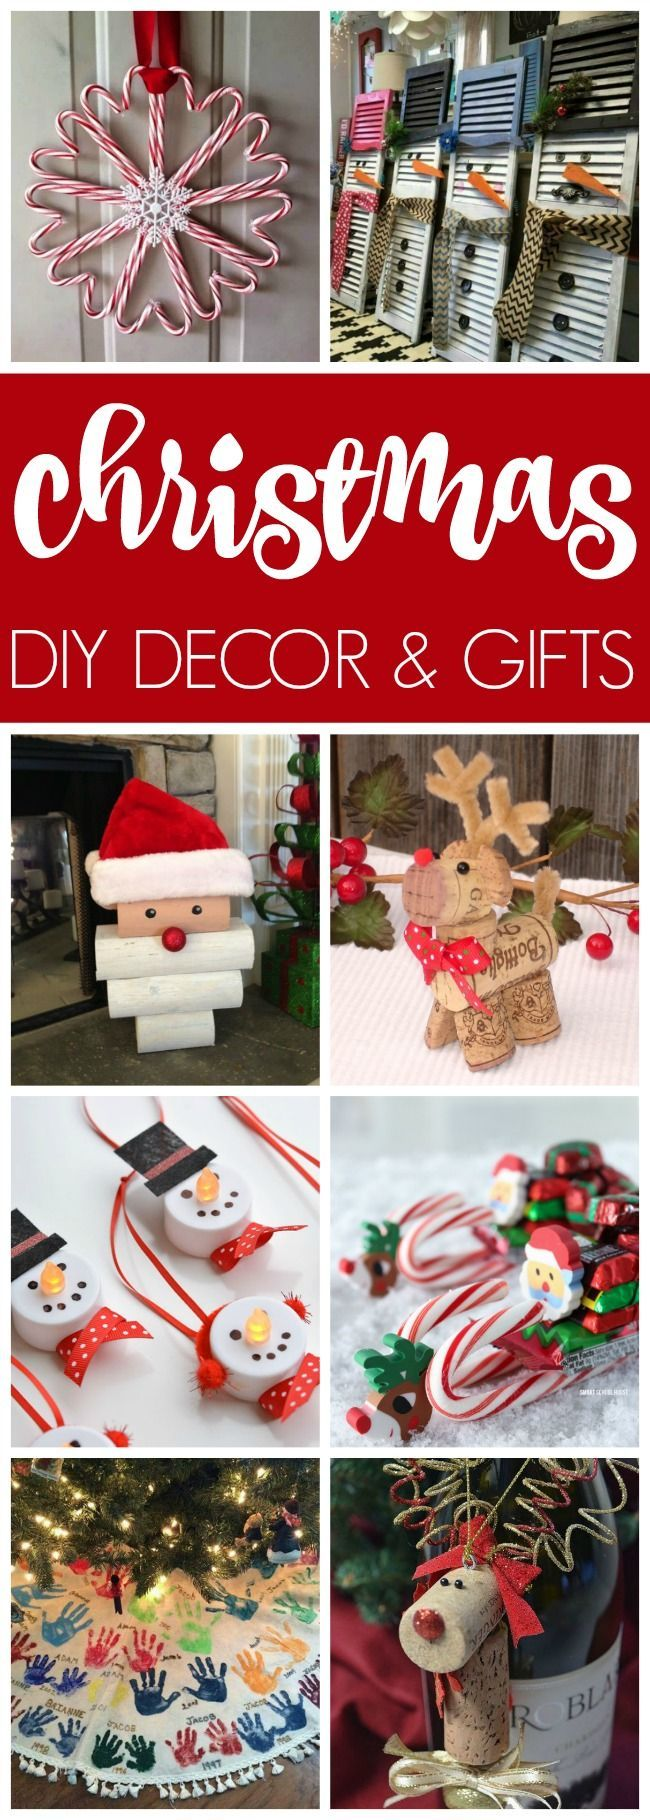 DIY Christmas Decor u0026 Gift Ideas via